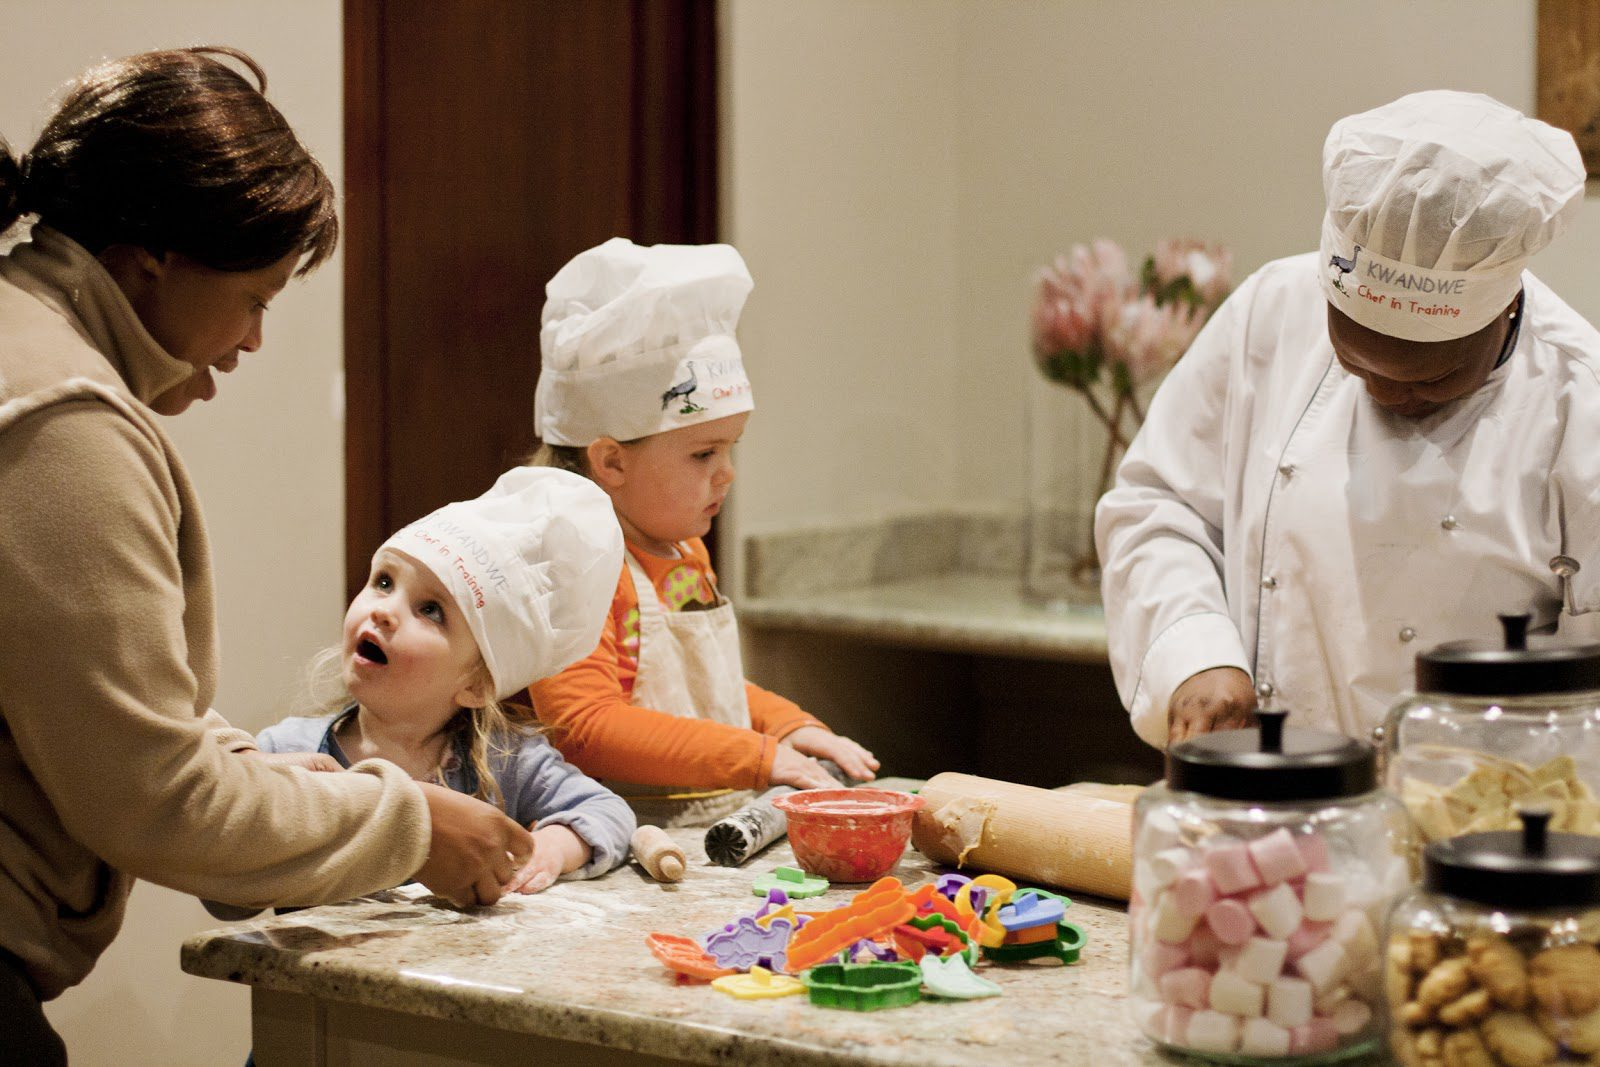 a guide, a chef, and two small girls in chef's hats stand at a kitchen counter strewn with cookie cutters and rolling pins, cooking